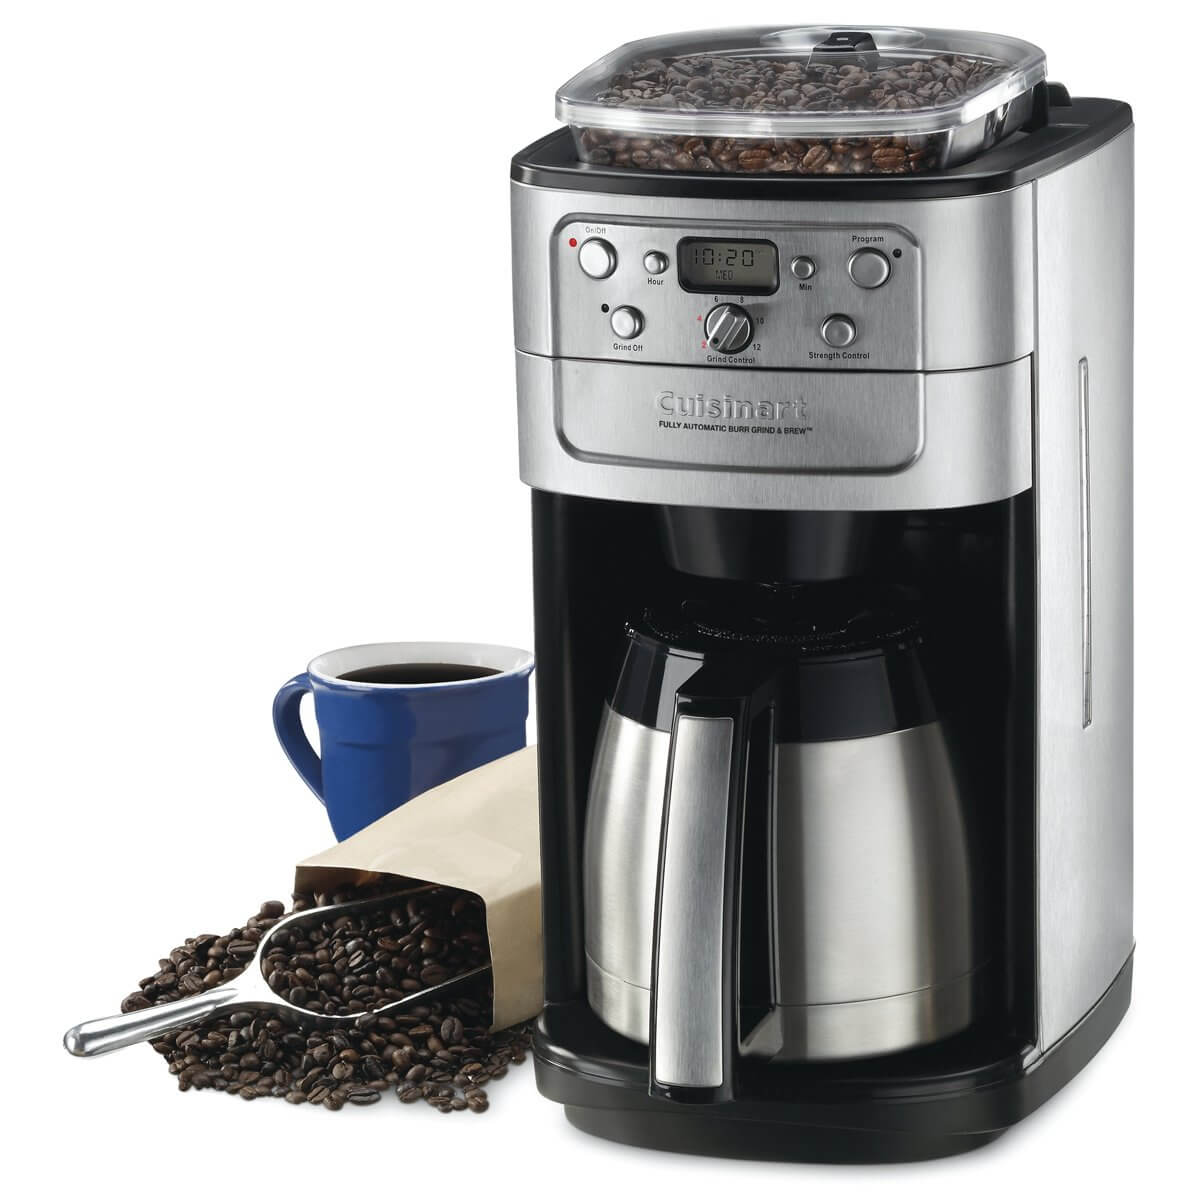 coffee grinder and maker, best single cup coffee maker with grinder,Cuisinart Automatic Coffeemaker and Burr Grinder, best coffee maker 2020